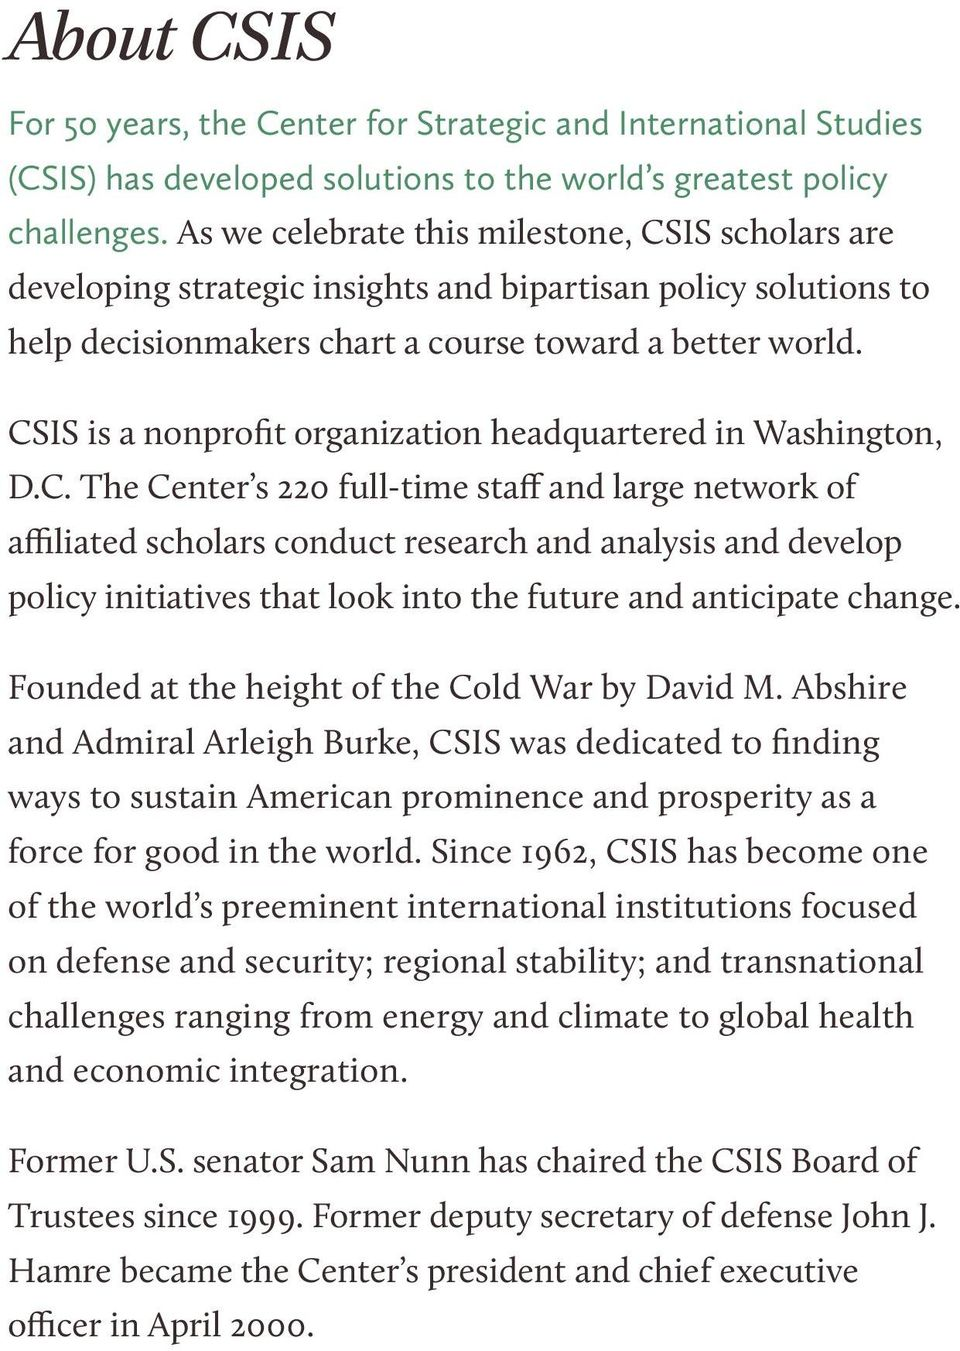 CSIS is a nonprofit organization headquartered in Washington, D.C. The Center s 220 full-time staff and large network of affiliated scholars conduct research and analysis and develop policy initiatives that look into the future and anticipate change.